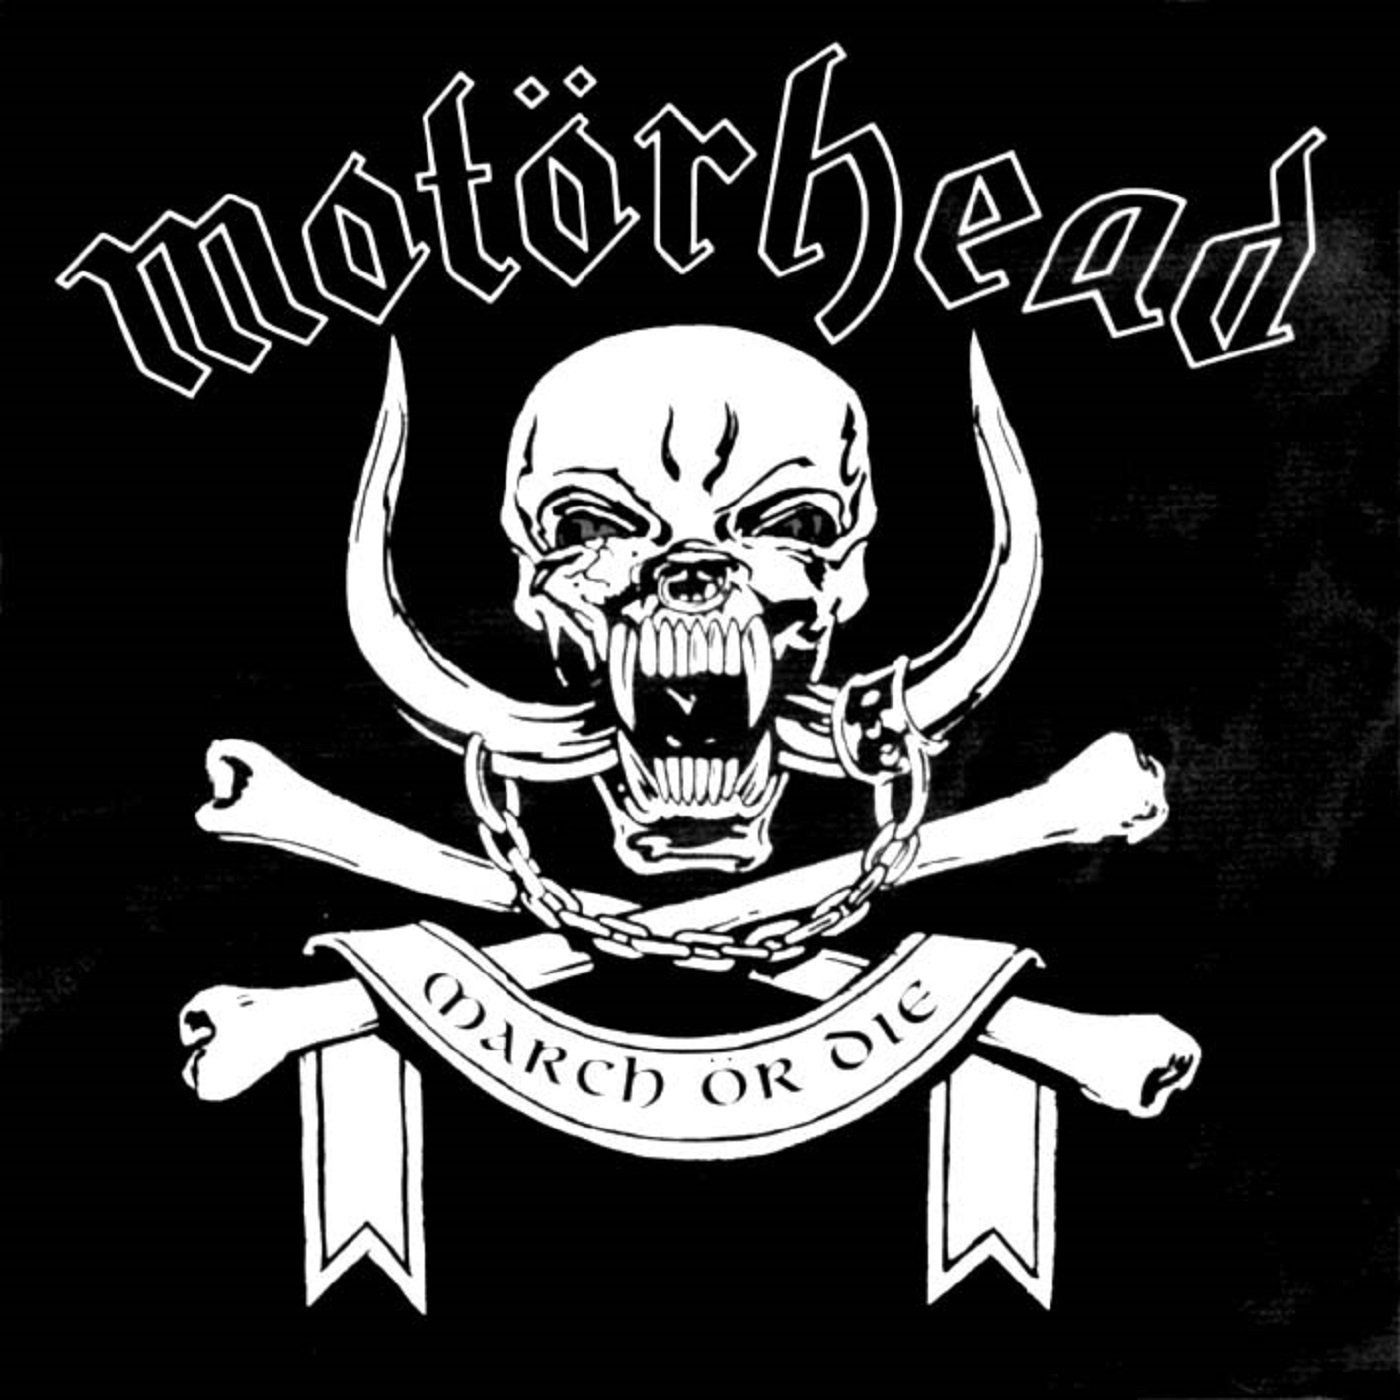 Motorhead March Or Die Motorhead logo, Motorhead, Band